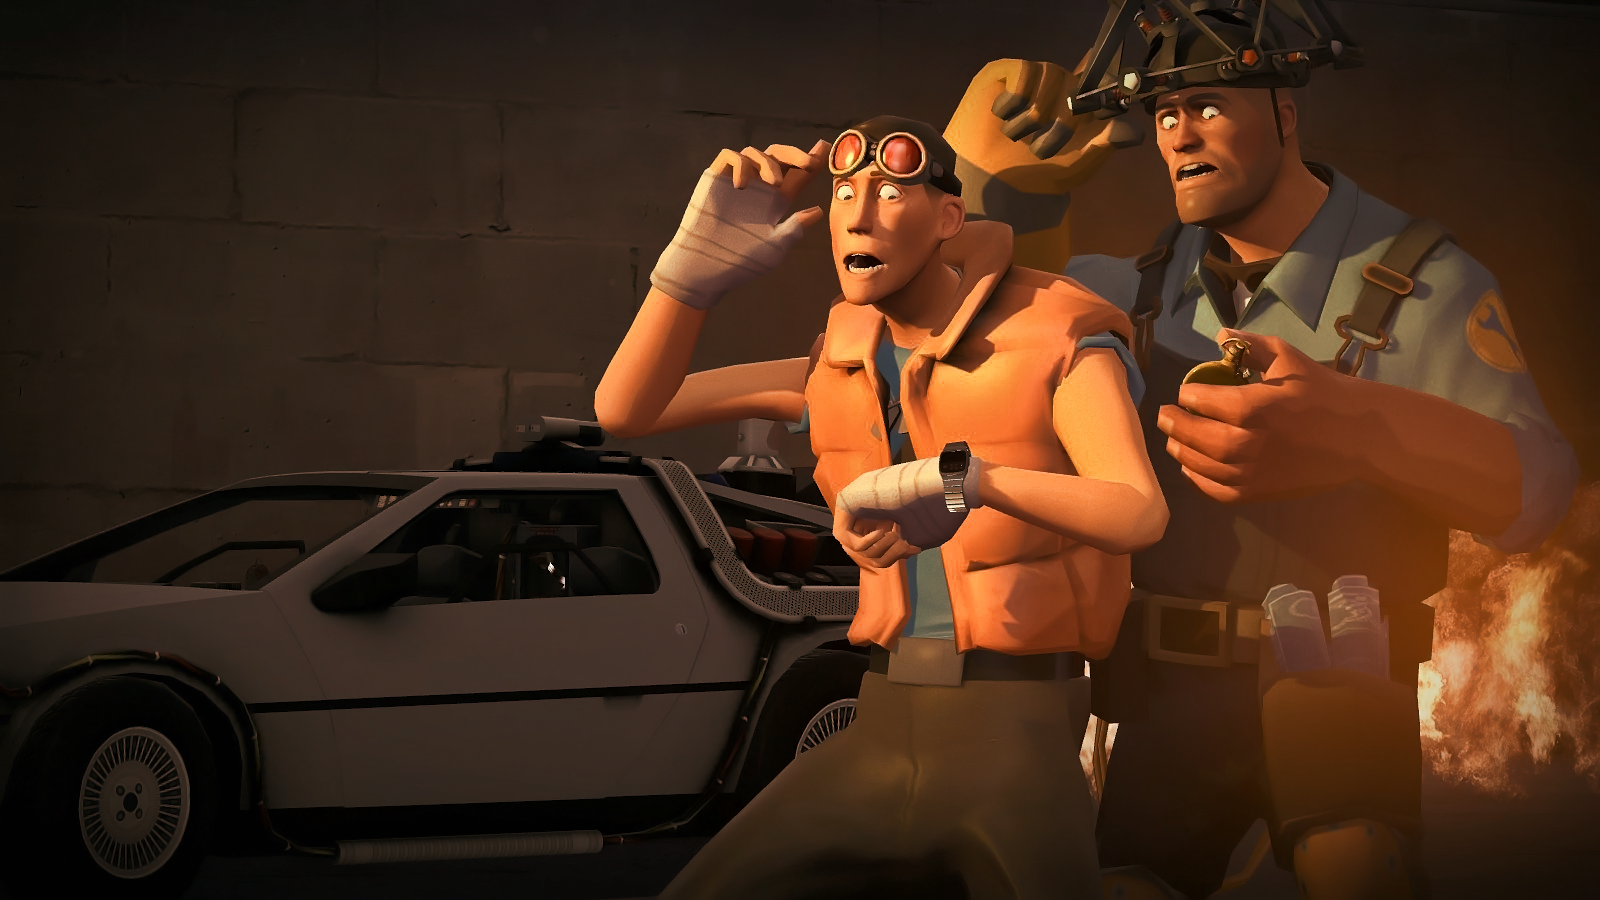 Valve Release Team Fortress 2 Expiration Date Video